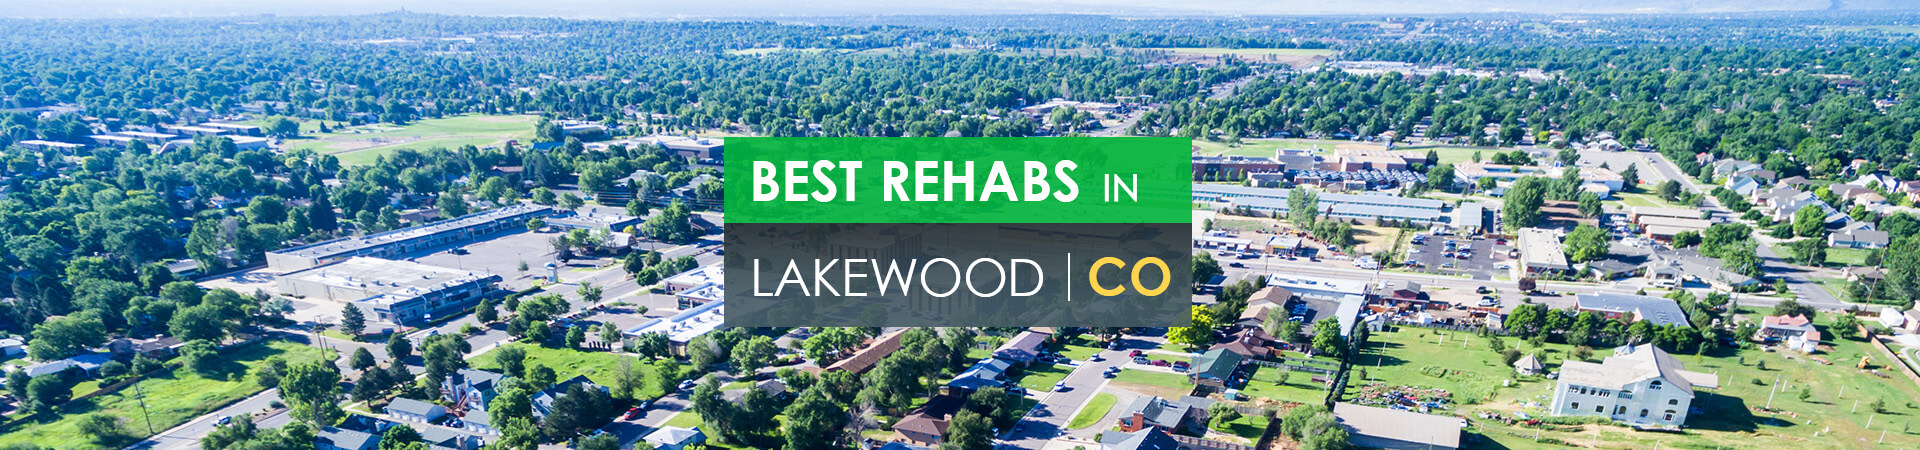 Best rehabs in Lakewood, CO